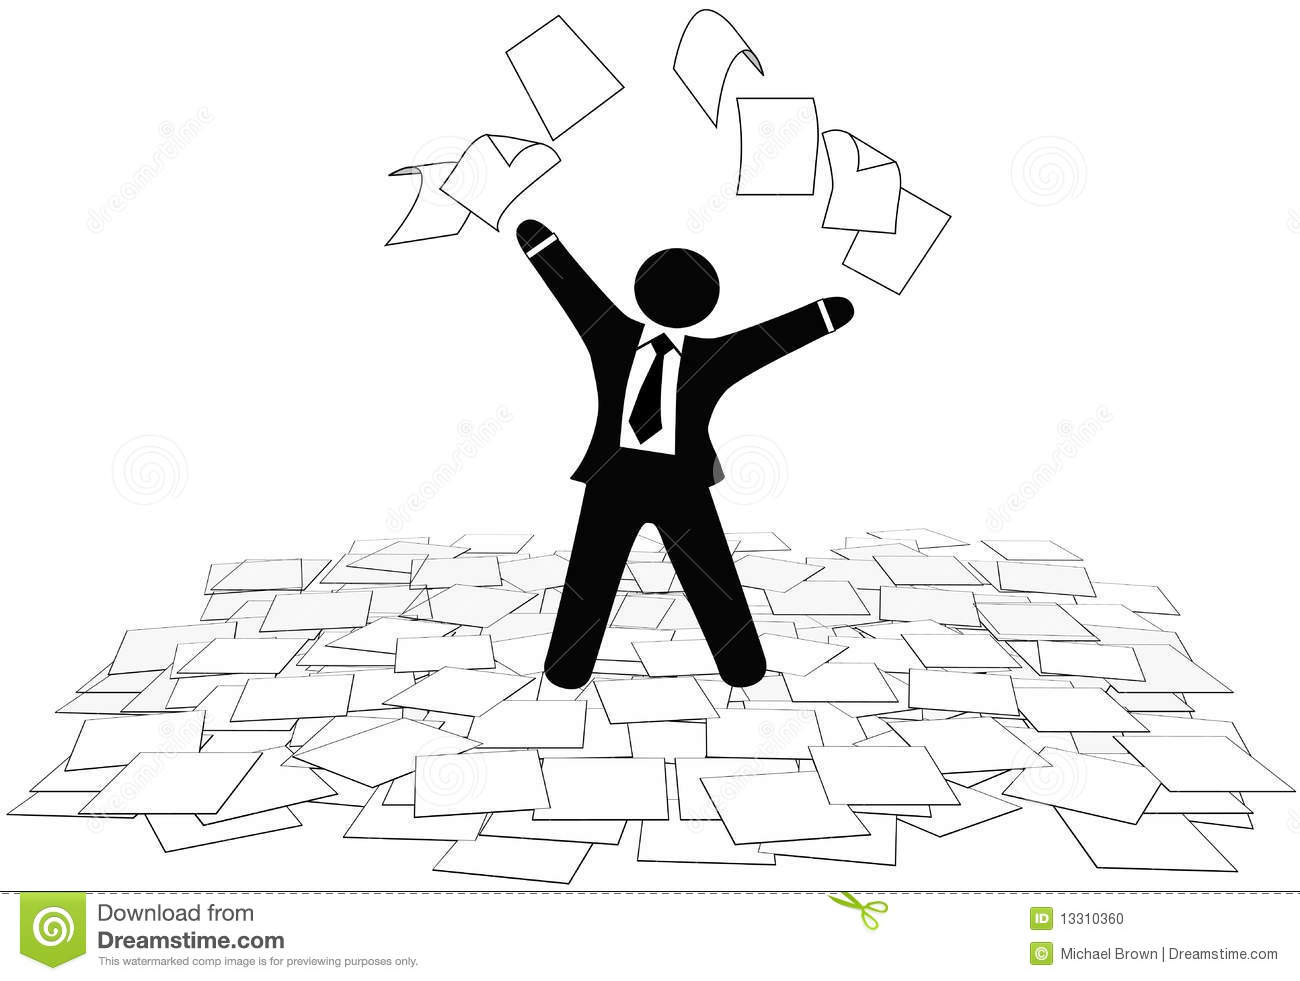 Stock Image Radioactive Image165201 furthermore Royalty Free Stock Image Recycle Symbol Image18589336 besides Stock Image Electrical Symbol Icon Set Image13236471 further Stock Photo Business Man Throws Paper Work Pages To Air Floor Image13310360 together with Stock Photo Superhero Icon Vector Flying Superman Figure Symbol Image31588830. on design floor plan symbol for audio